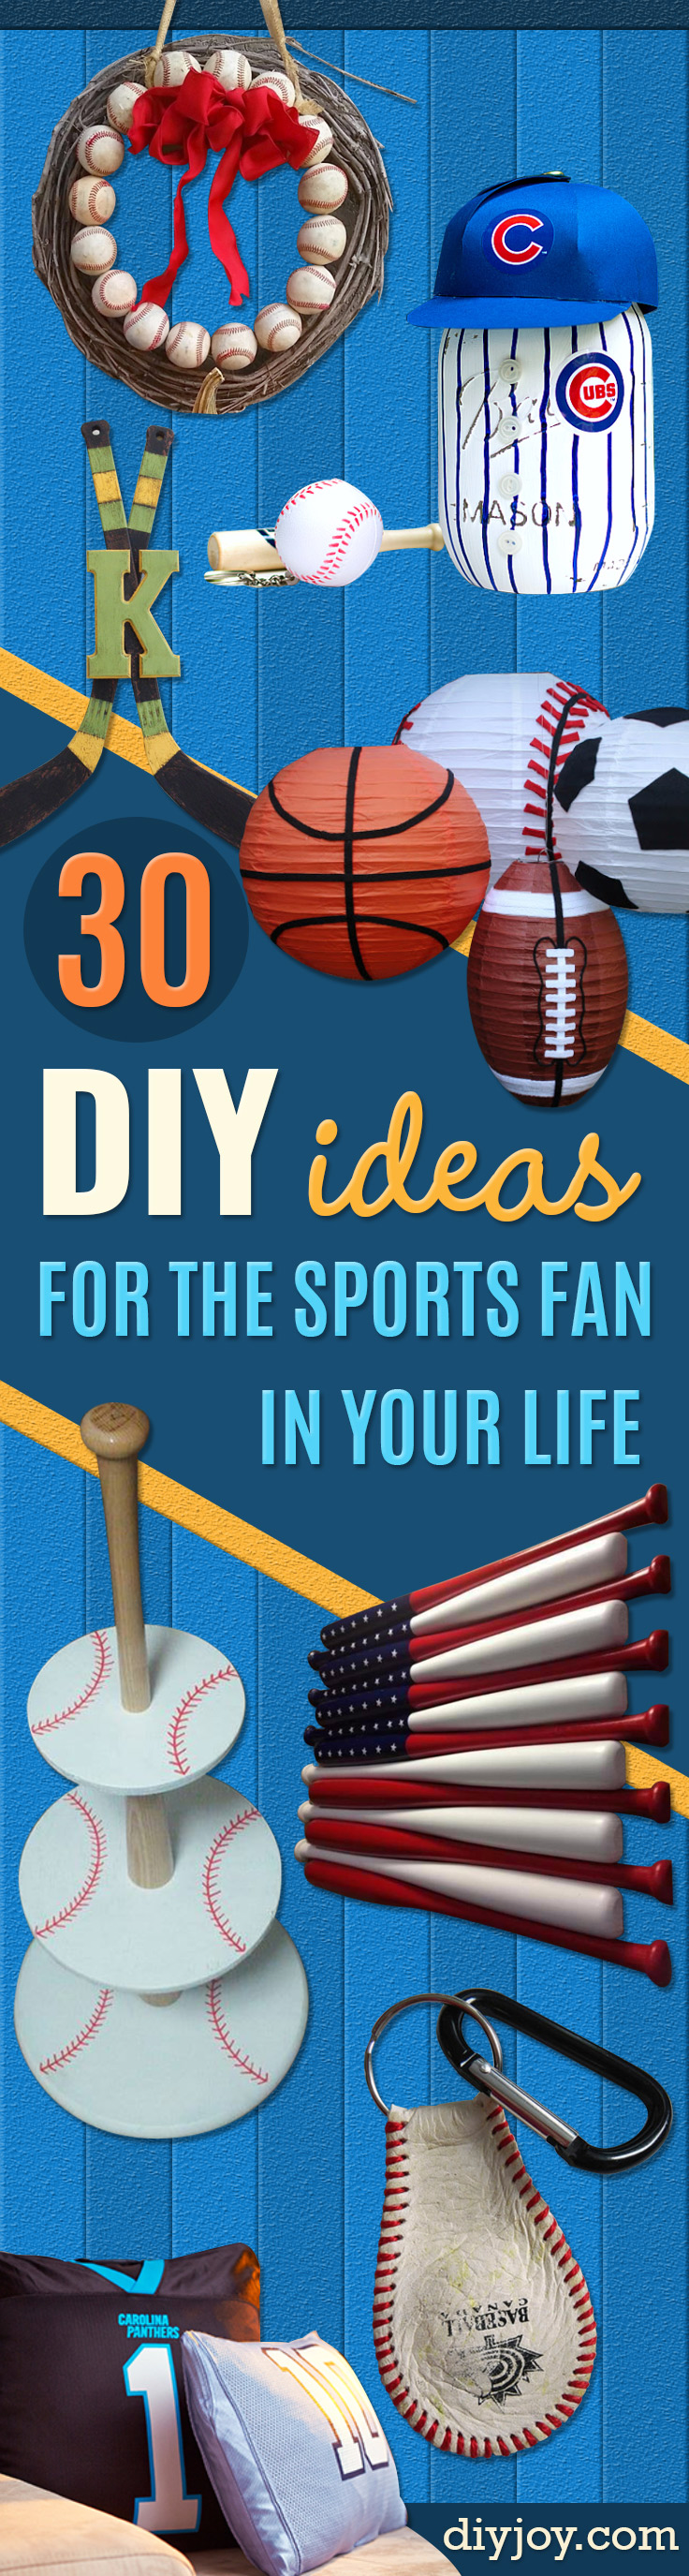 DIY Projects for the Sports Fan - Crafts and DIY Ideas for Men - Football, Baseball, Basketball, Soccer and Golf - Wall Art, DIY Gifts, Easy Gift Ideas, Room and Home Decor